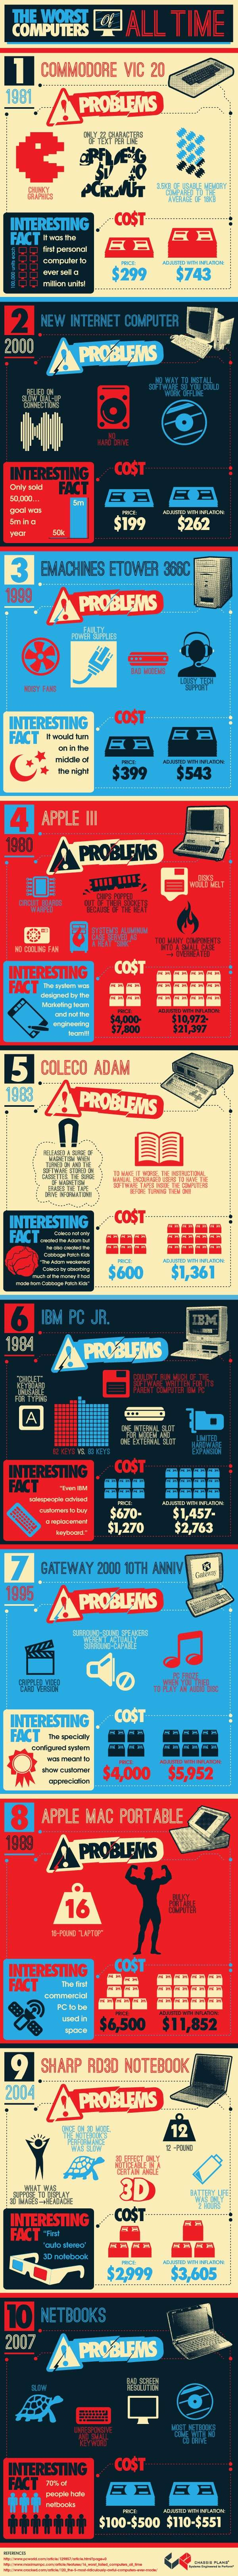 The Worst Computers of All Time - Infographic